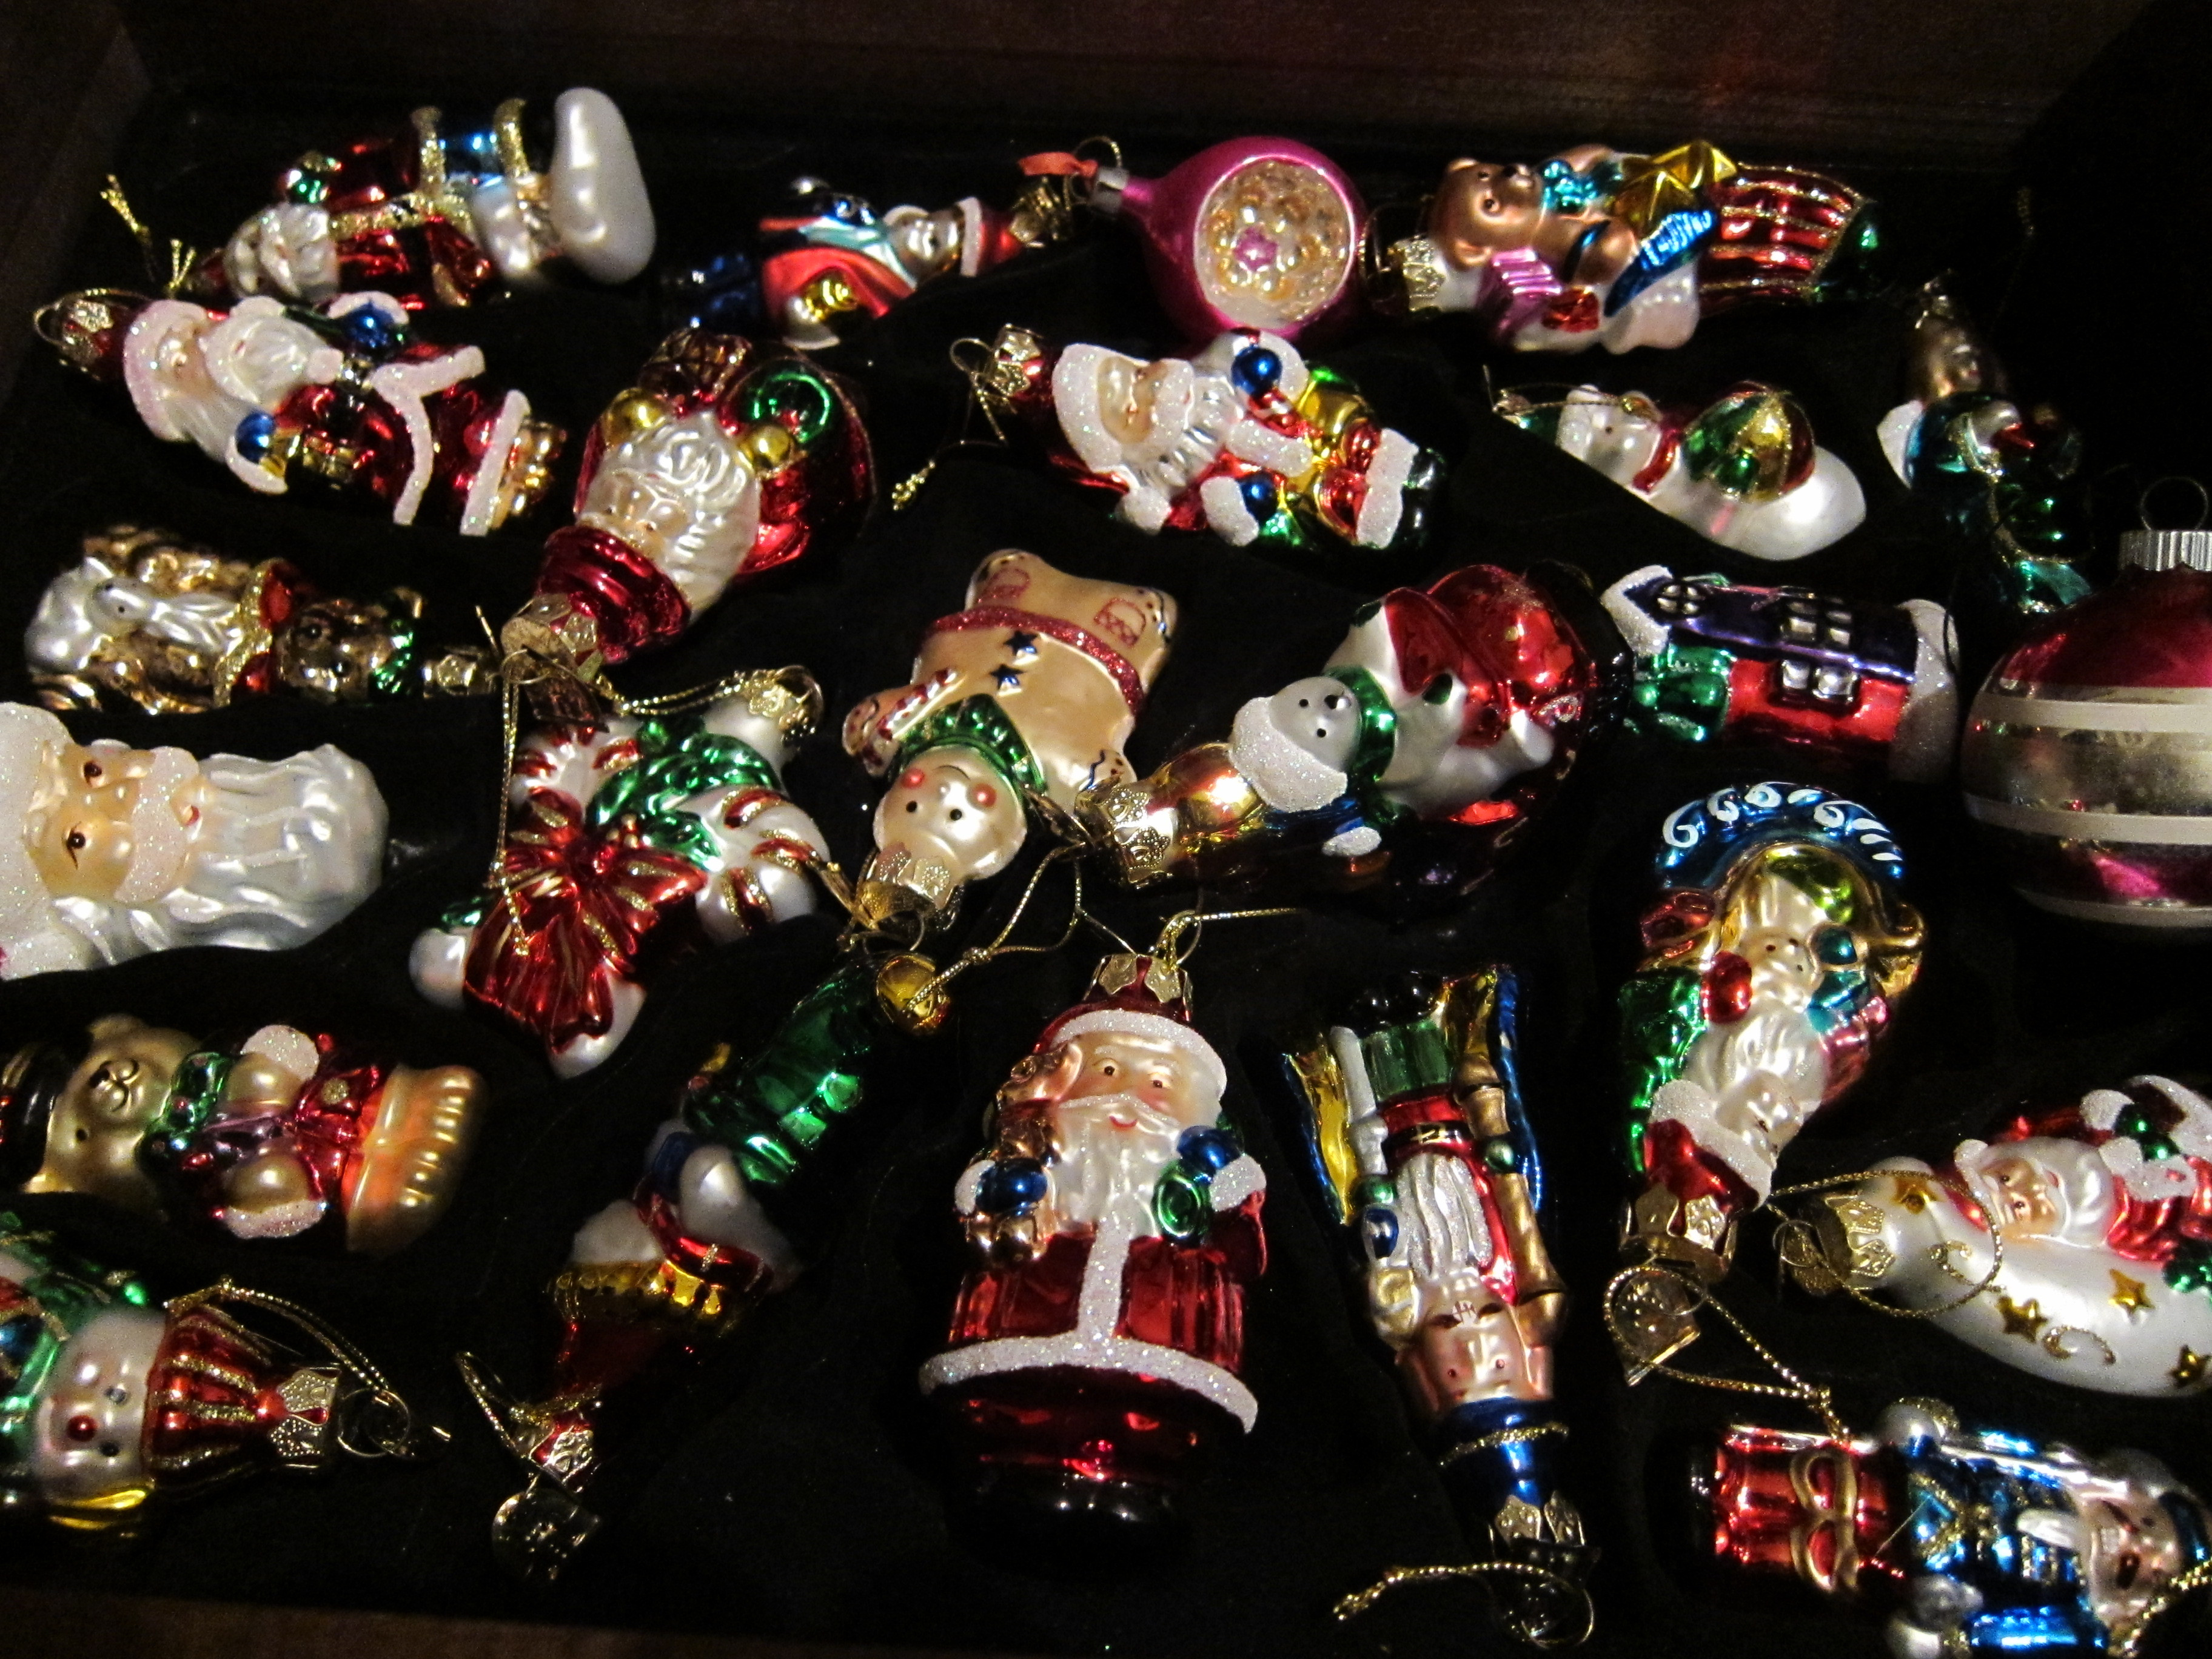 Vintage Christmas ornaments Best Of Christmas Lori S Favorite Things Of Lovely 43 Images Vintage Christmas ornaments